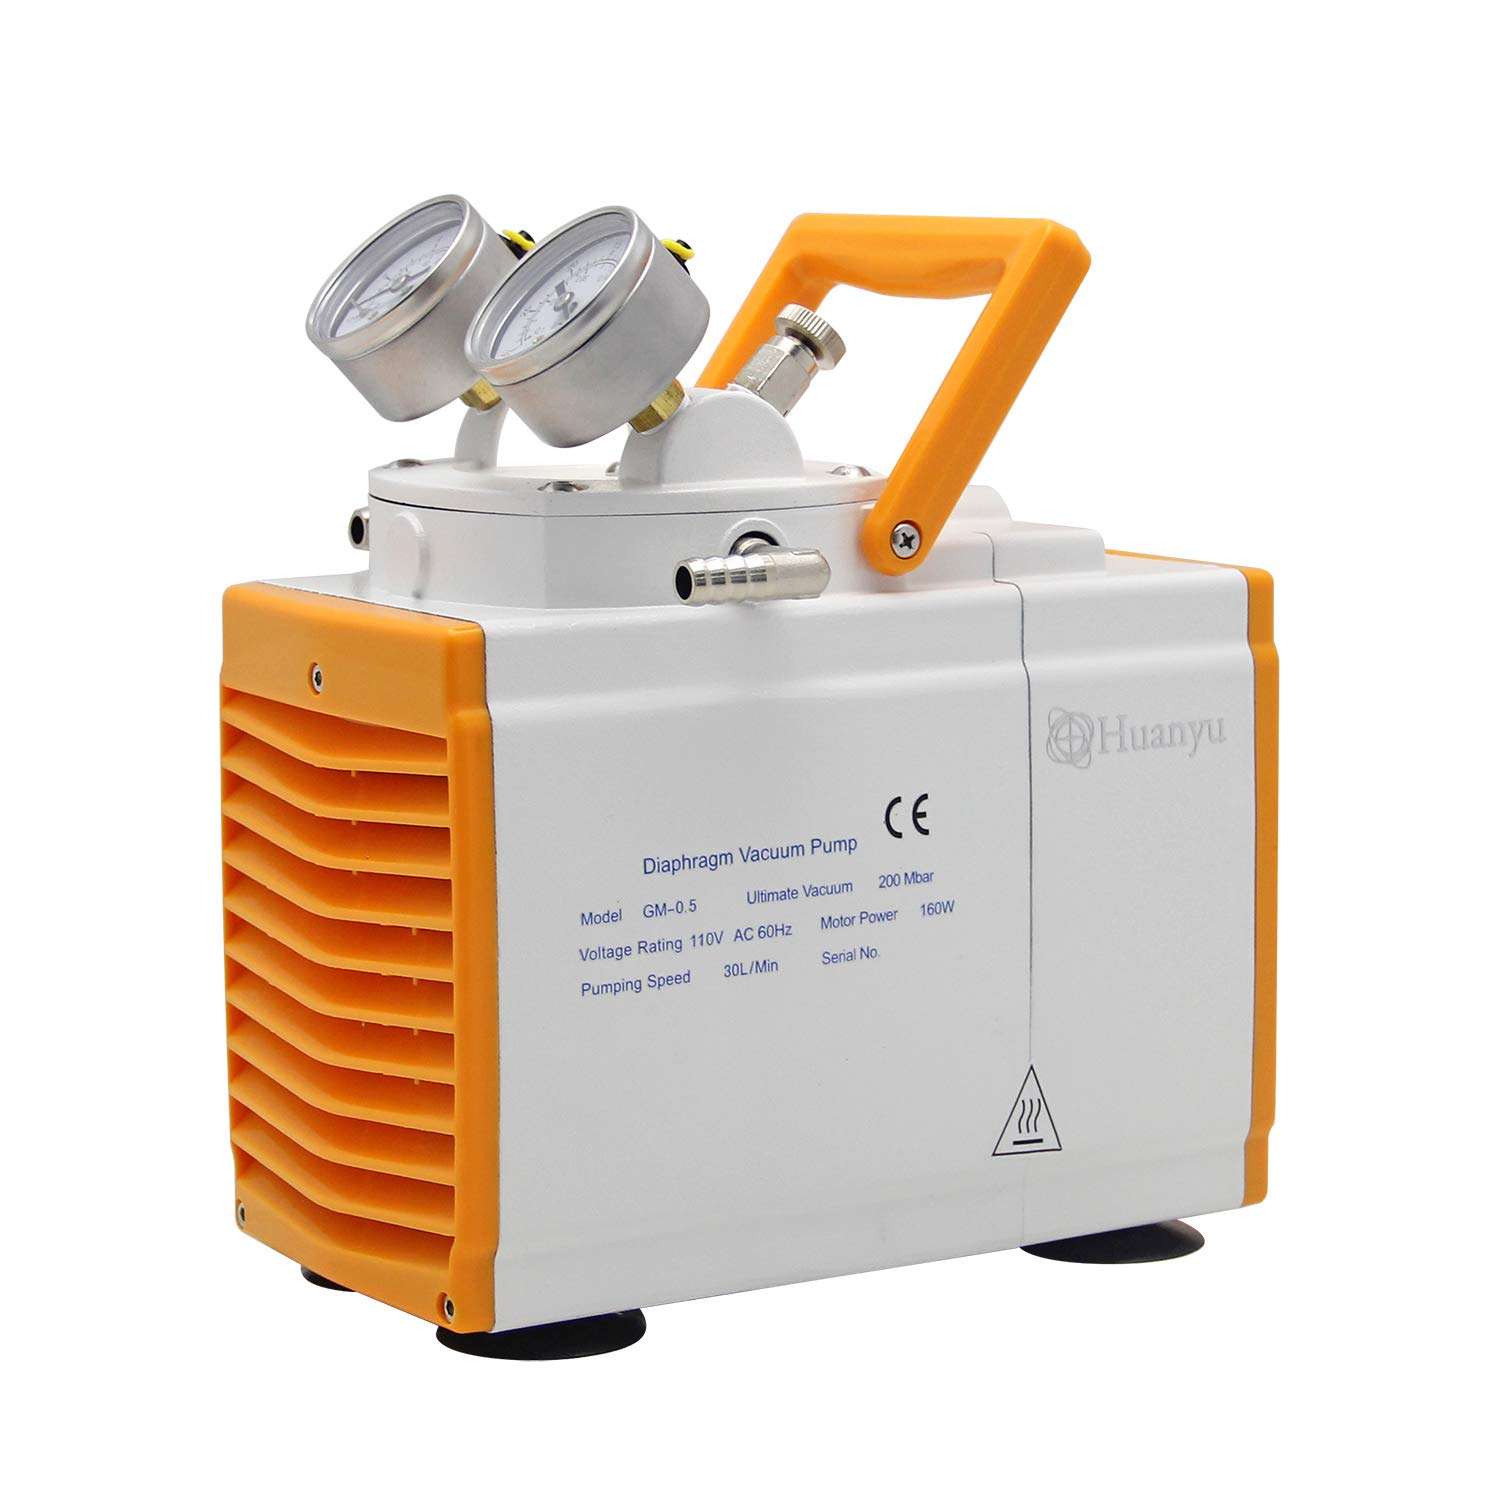 Huanyu Oilless Diaphragm Vacuum Pump Oil Free Anticorrosive Pump 30L/min Lab R&D for Filtration Extraction Apsorption 110V(Anticorrosive Type, GM-0.5A(Single Pump)): Industrial & Scientific